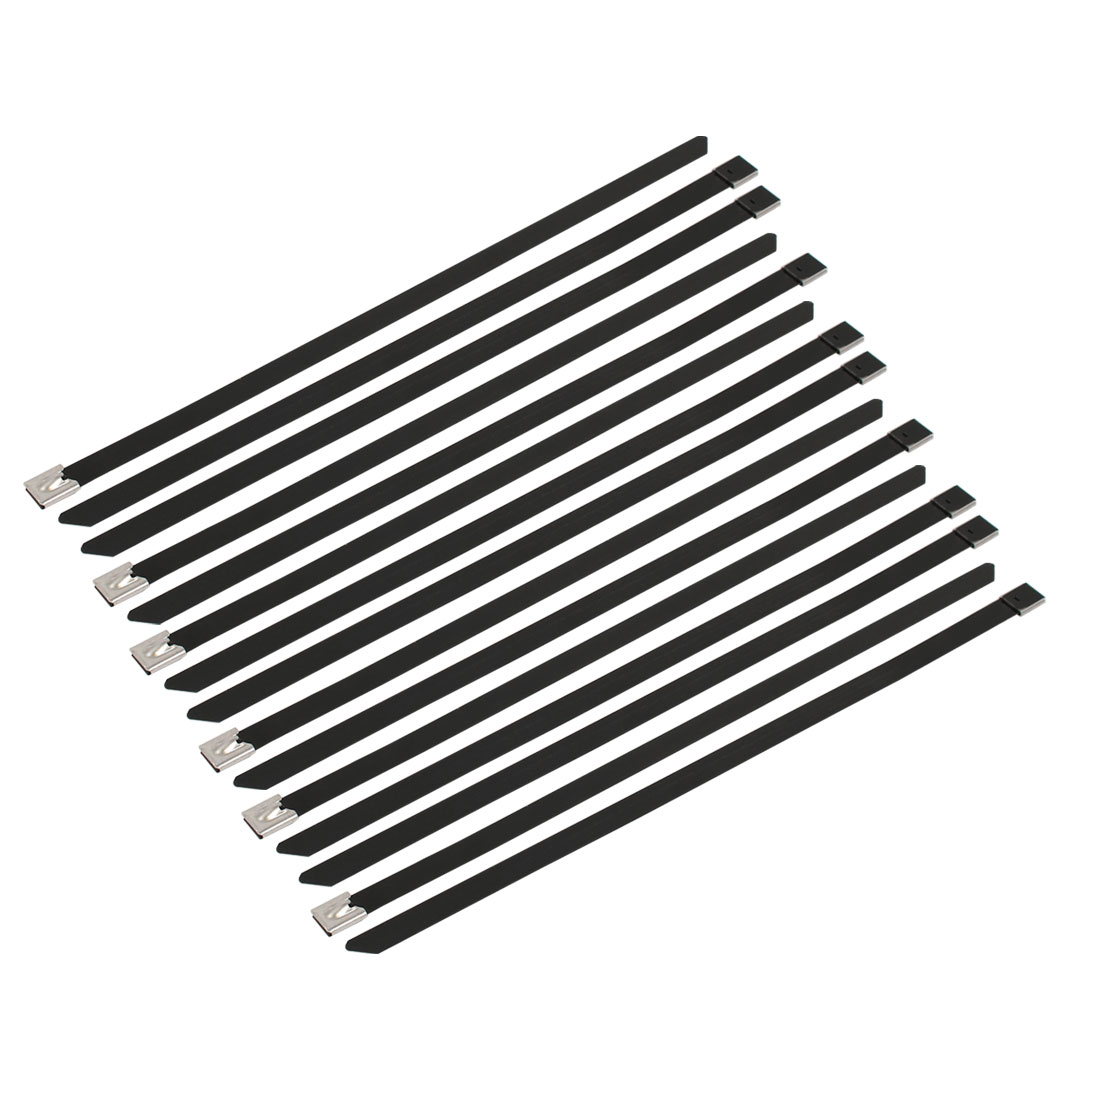 15pcs 10mm Width 300mm Length Stainless Steel Cable Tie Wire Strap Black